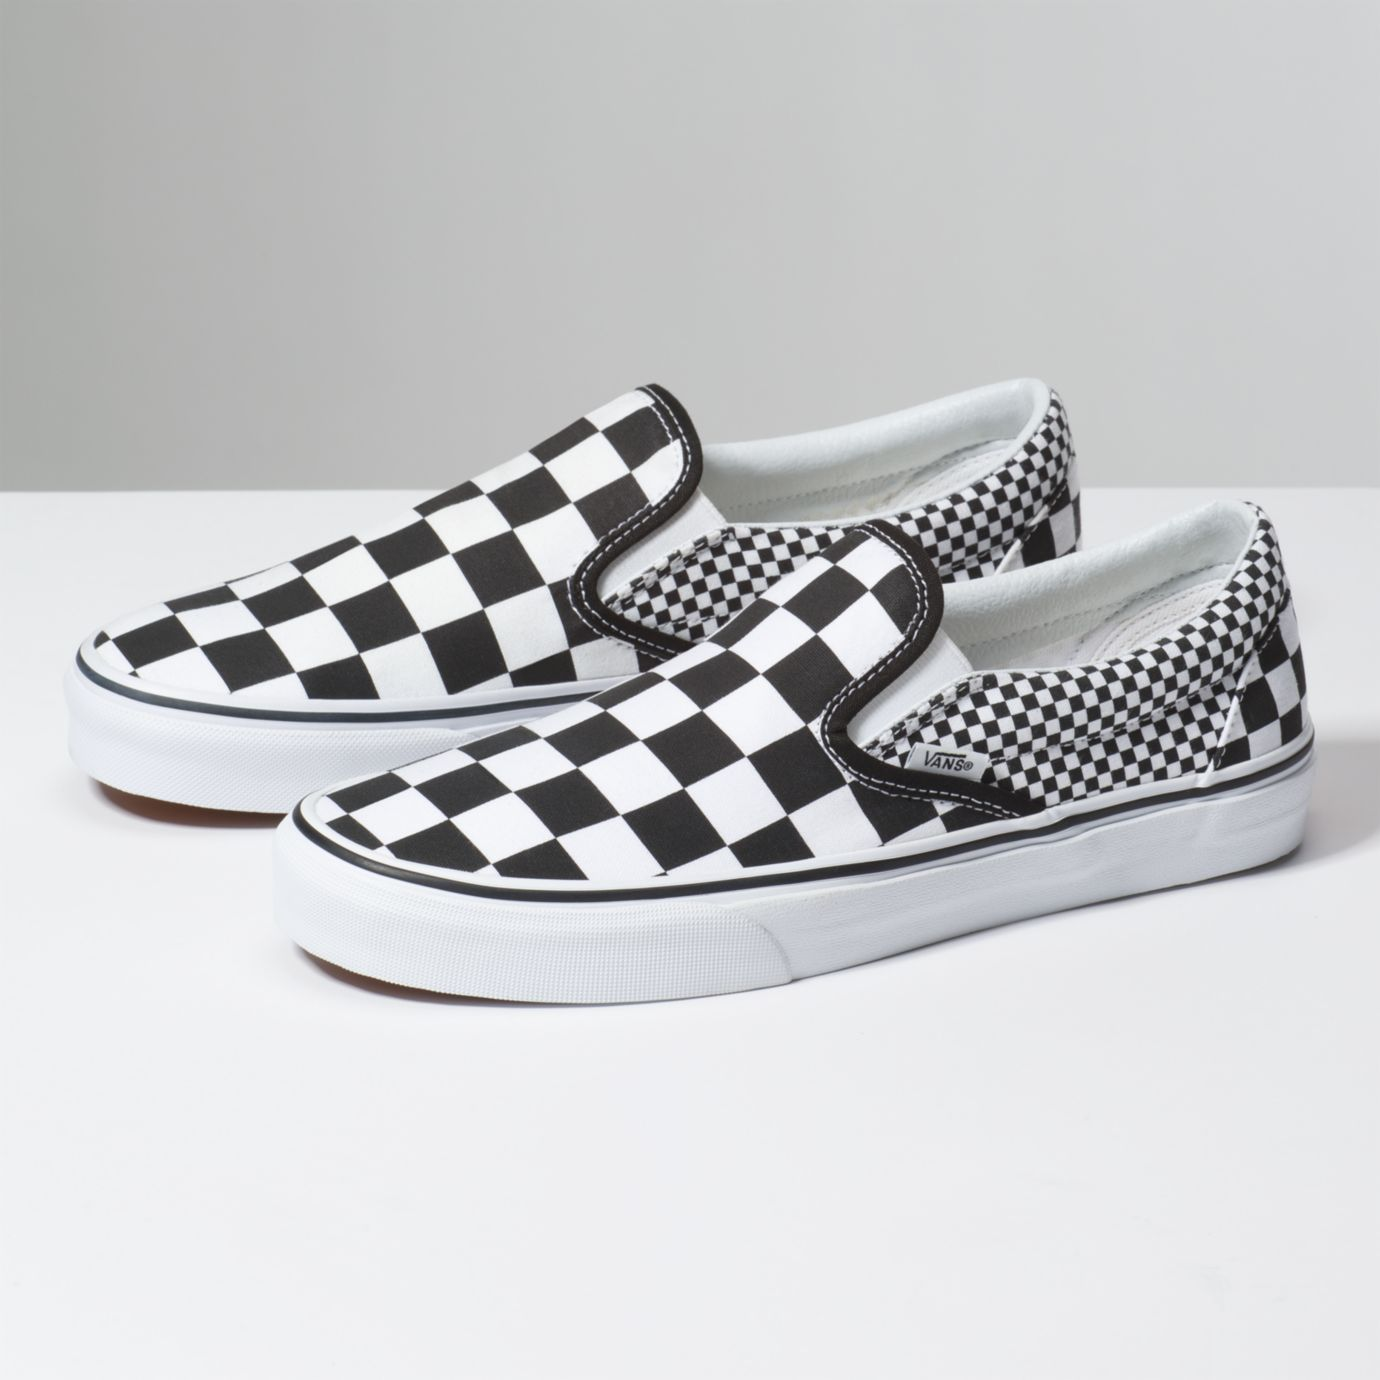 Vans Remixes Iconic Checkerboard dbc7b06baa